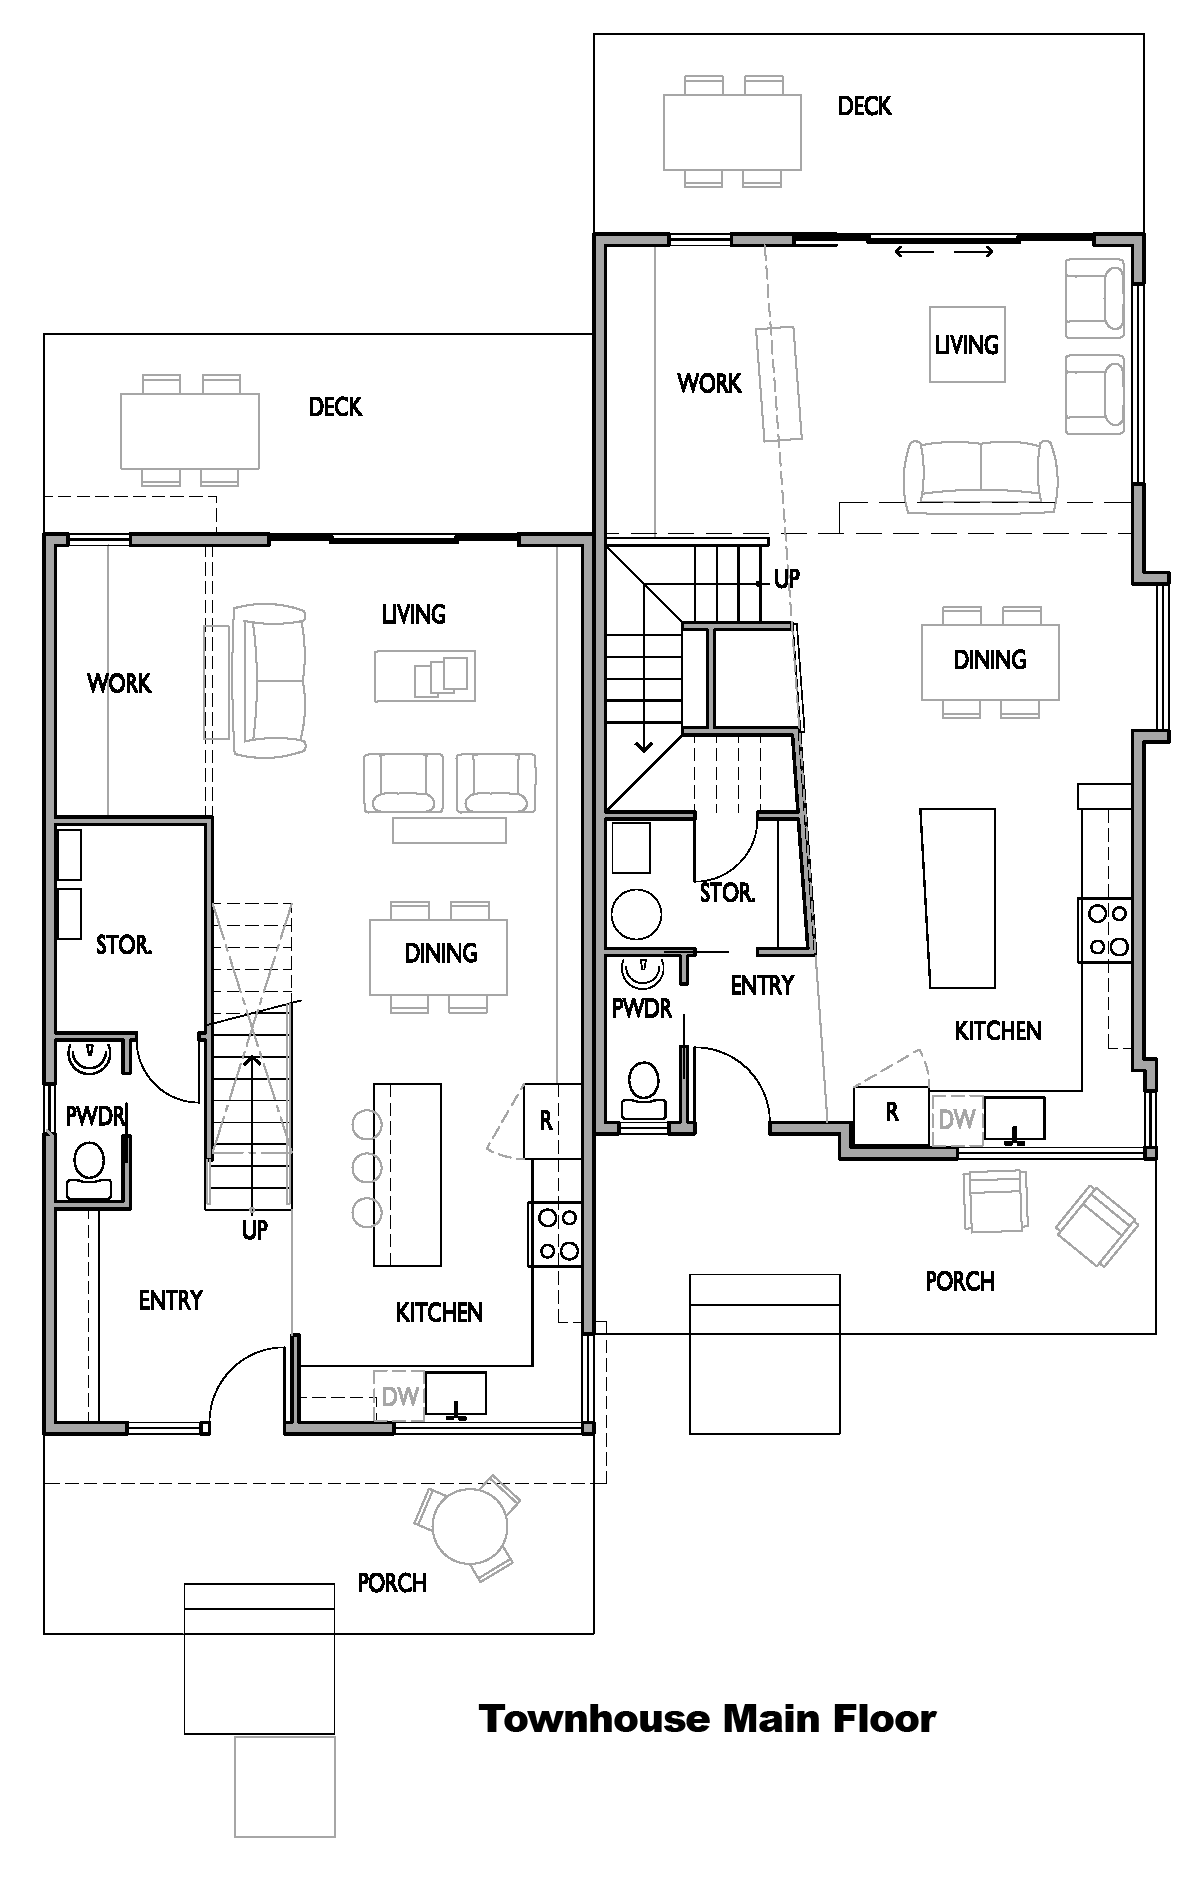 electrical plan of single family dwelling wiring diagram Single Family Dwelling Northwest Native Tribes electrical plan of single family dwelling wiring librarylayout clearwater site and house plans clearwater commons layout